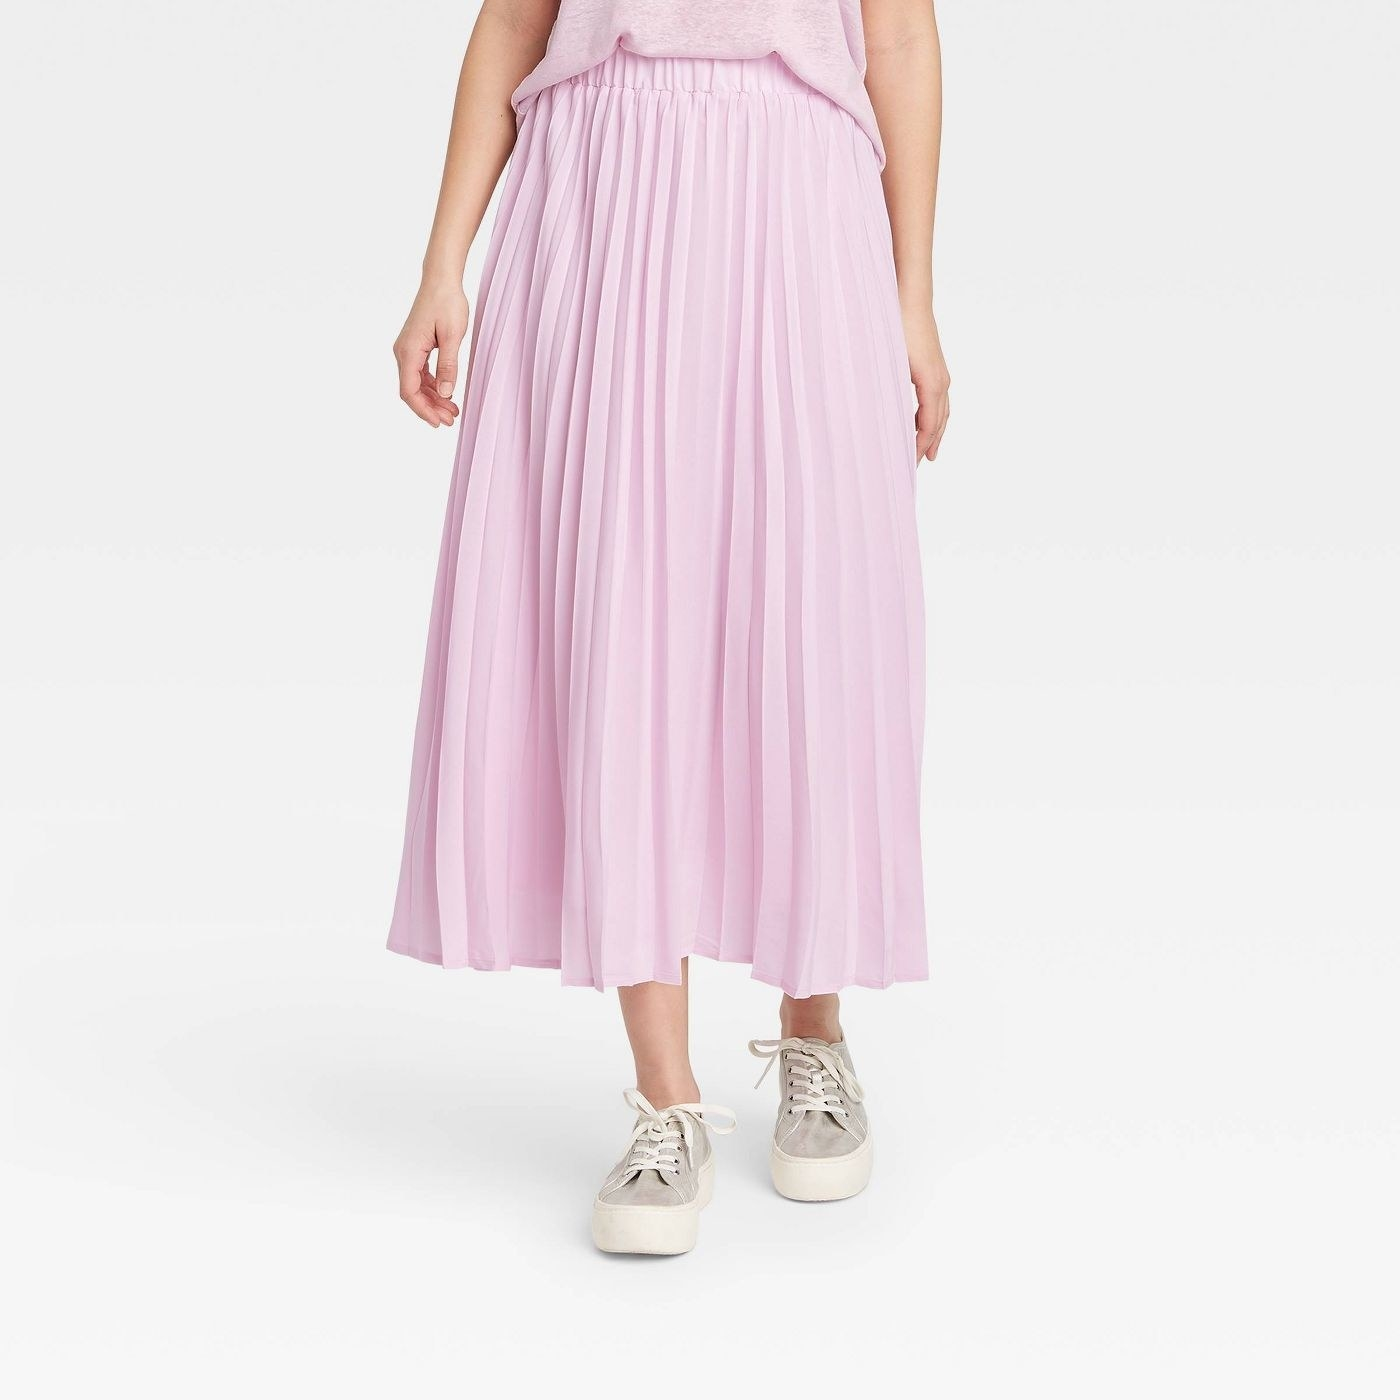 Model in midi pleated a-line skirt